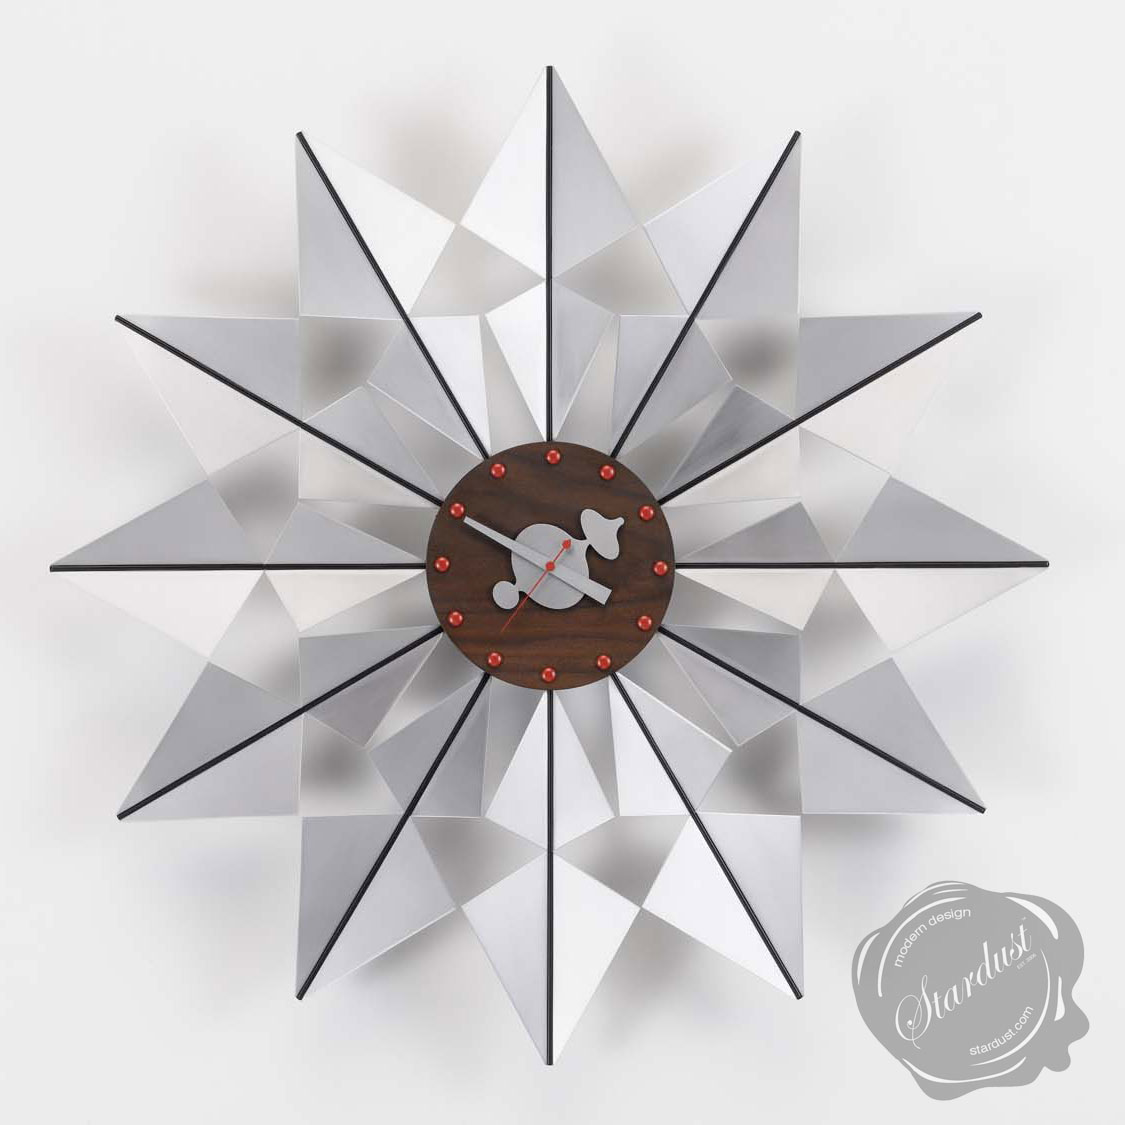 Exceptional BUTTERFLY George Nelson Clock Remarkable Mid/century Modern Clock Design By  George Nelson Clocks, Walnut